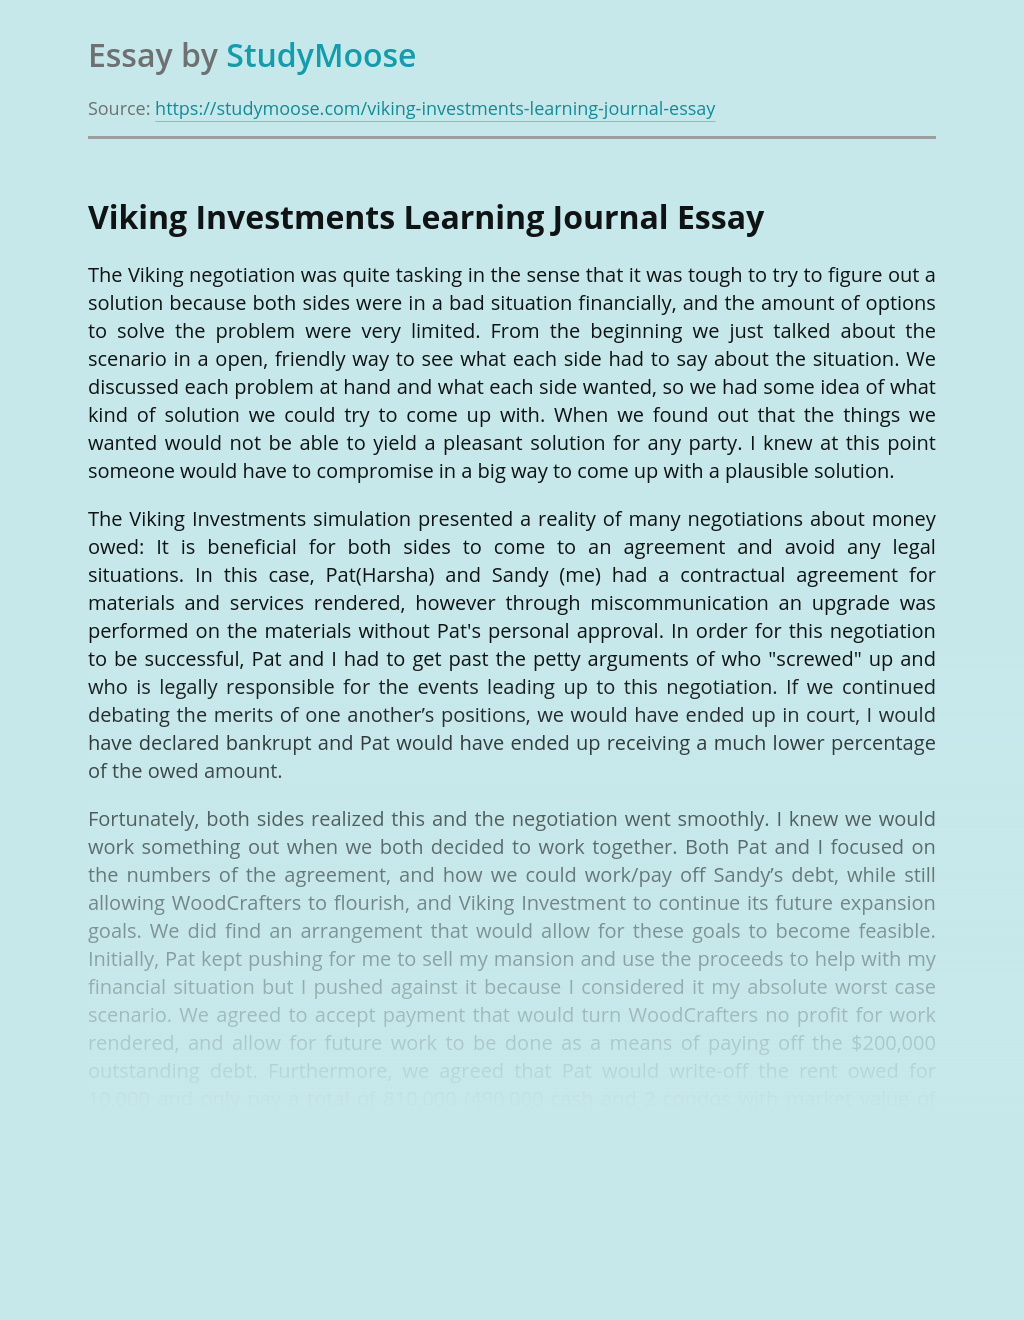 Viking Investments Learning Journal